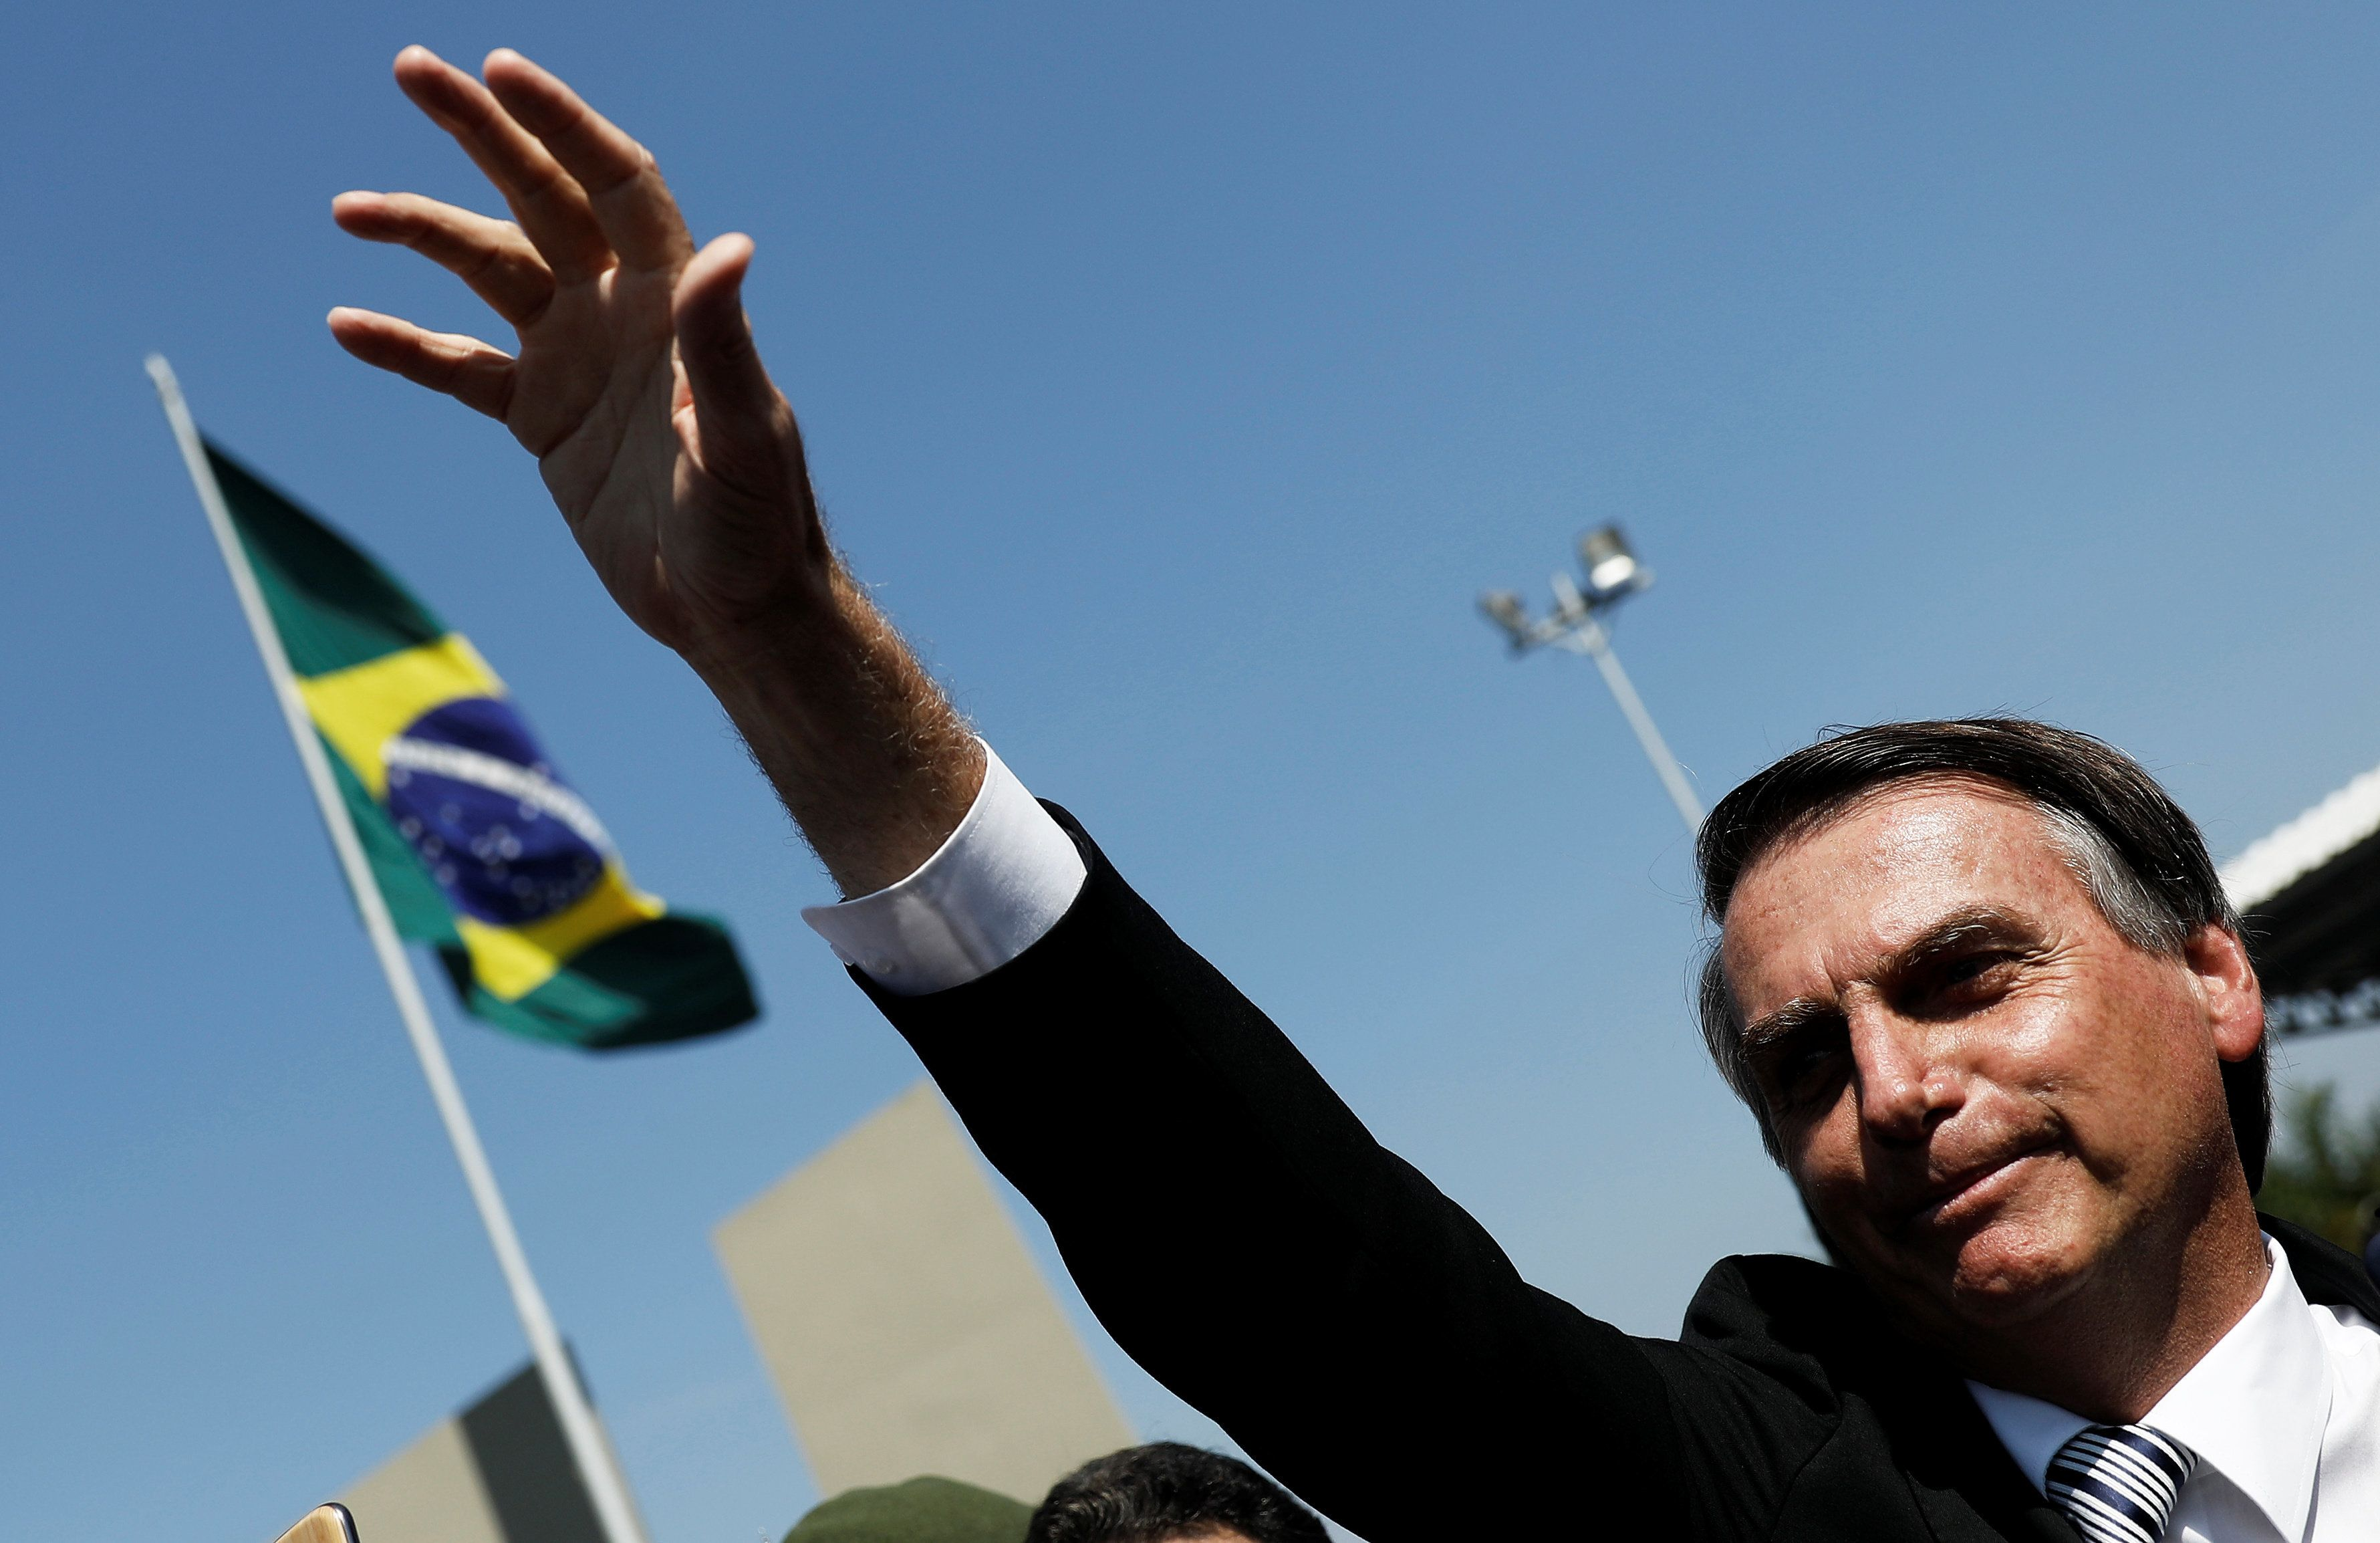 Brazilian Partido Social Liberal (PSL) presidential candidate and former military officer Jair Bolsonaro gestures during a military event in Sao Paulo, Brazil May 3, 2018. REUTERS/Nacho Doce